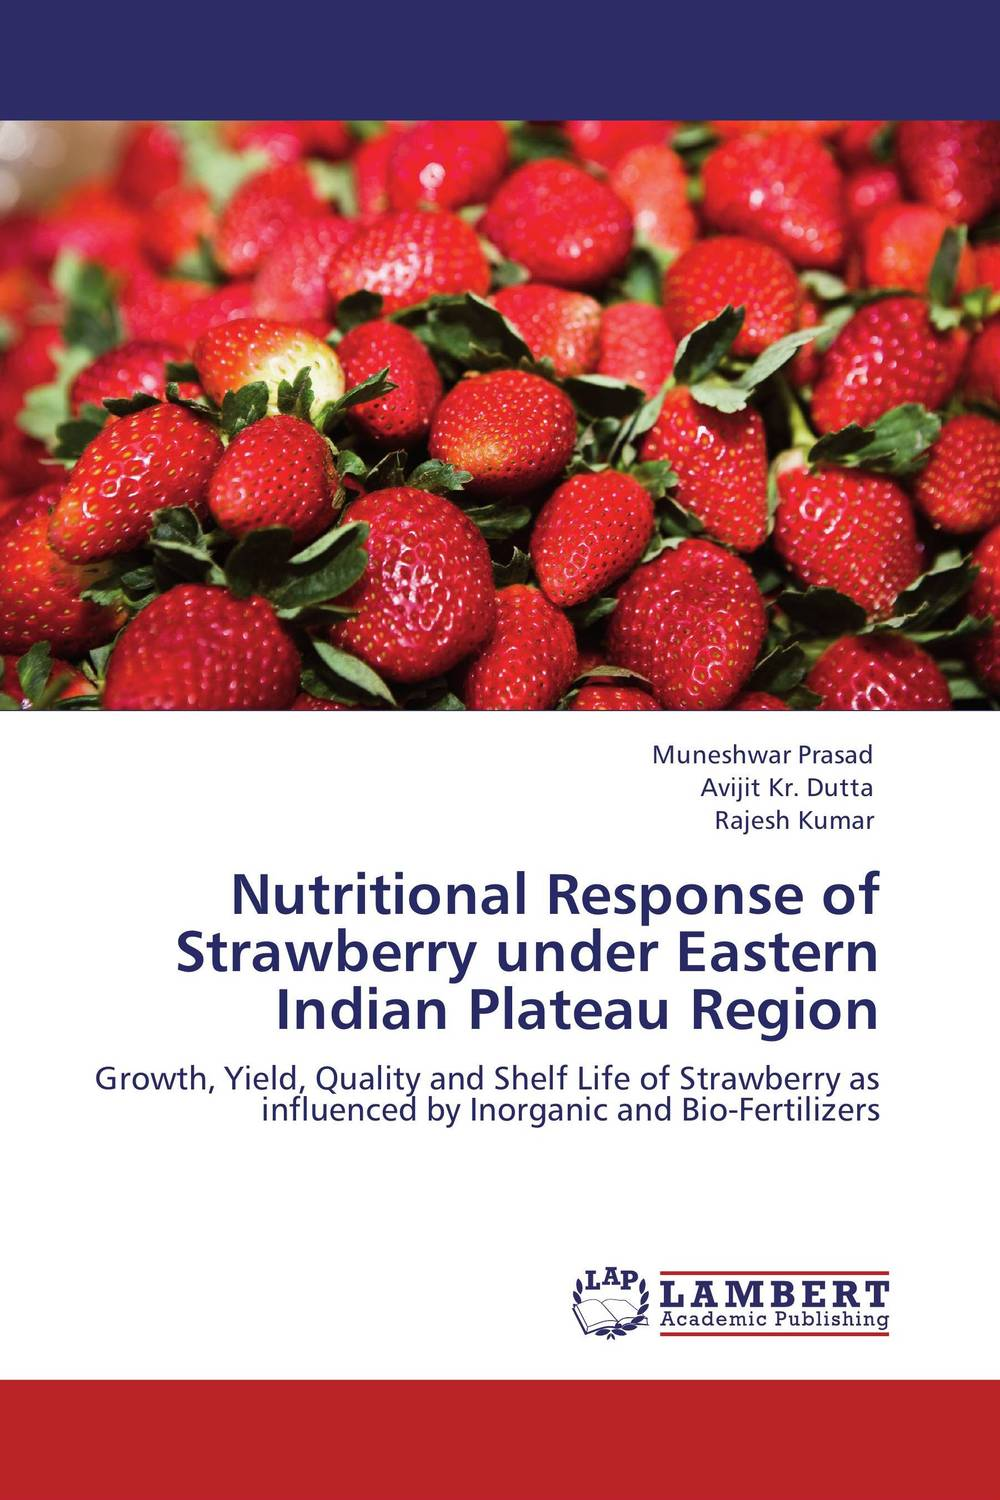 Nutritional Response of Strawberry under Eastern Indian Plateau Region prem chand cytoarchitecture and neuronal types in forebrain of strawberry finch